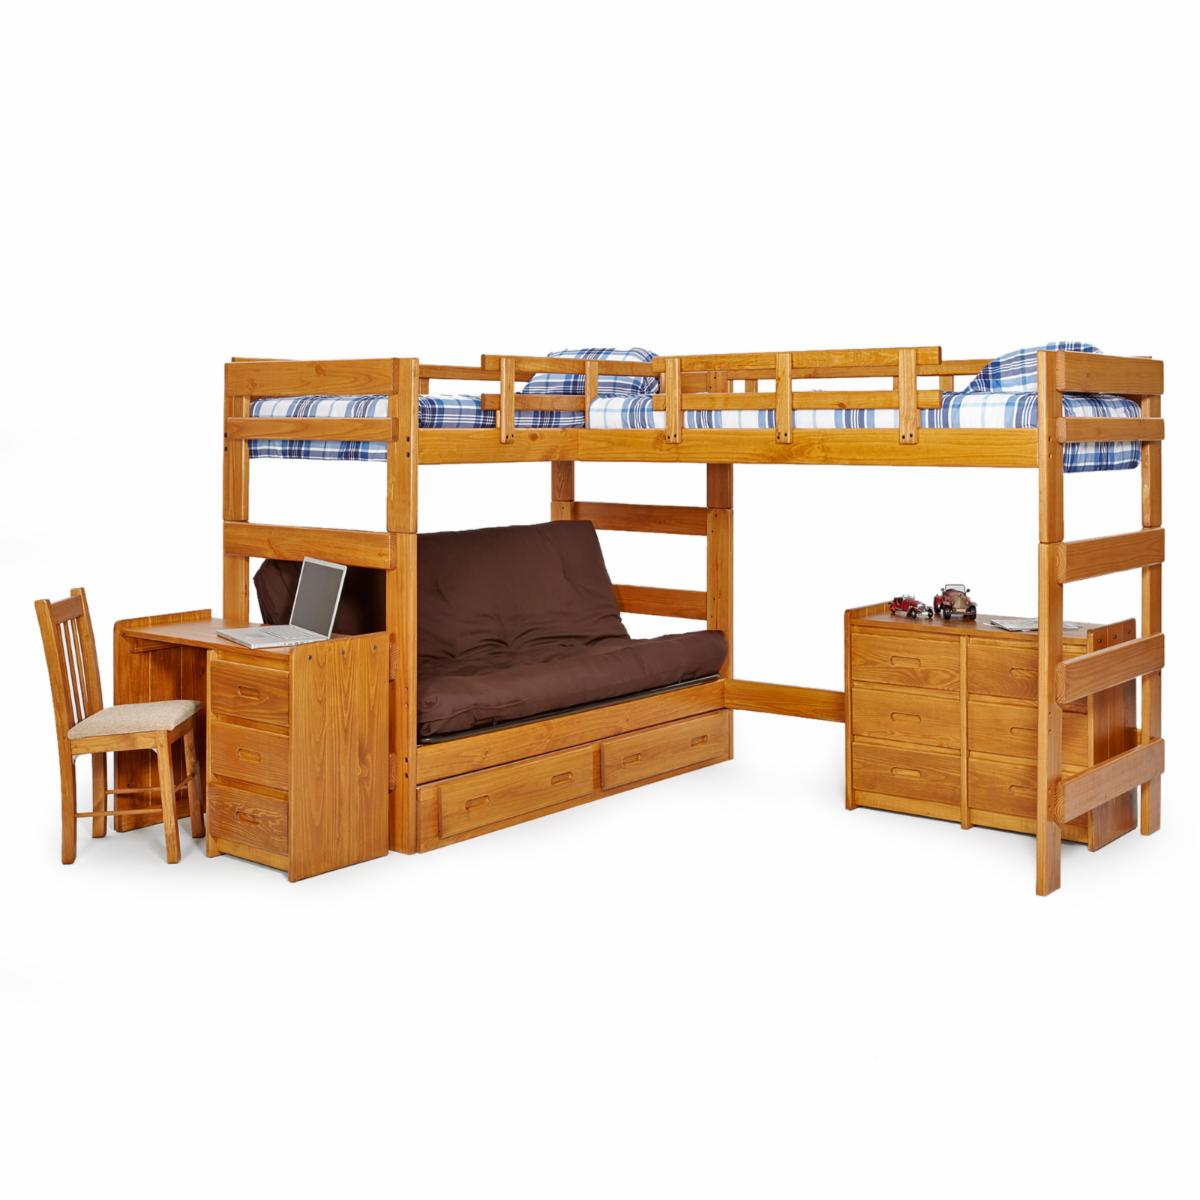 Bunk Beds For Sale | Shop at SimplyBunkBeds.